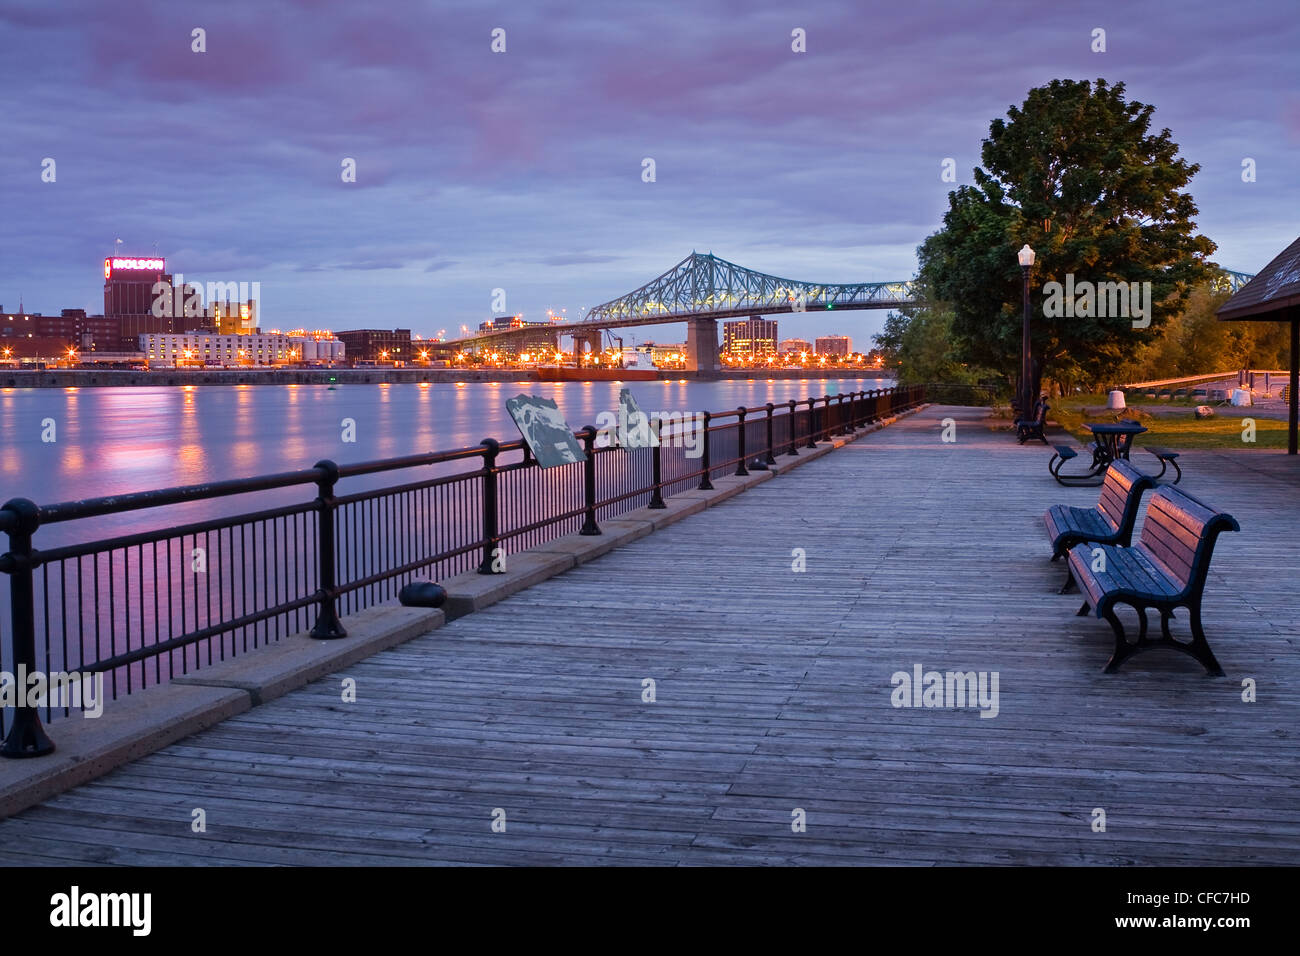 Island of Montreal and Jacques-Cartier Bridge as seen from St. Helen's Island at dawn, Quebec, Canada. - Stock Image